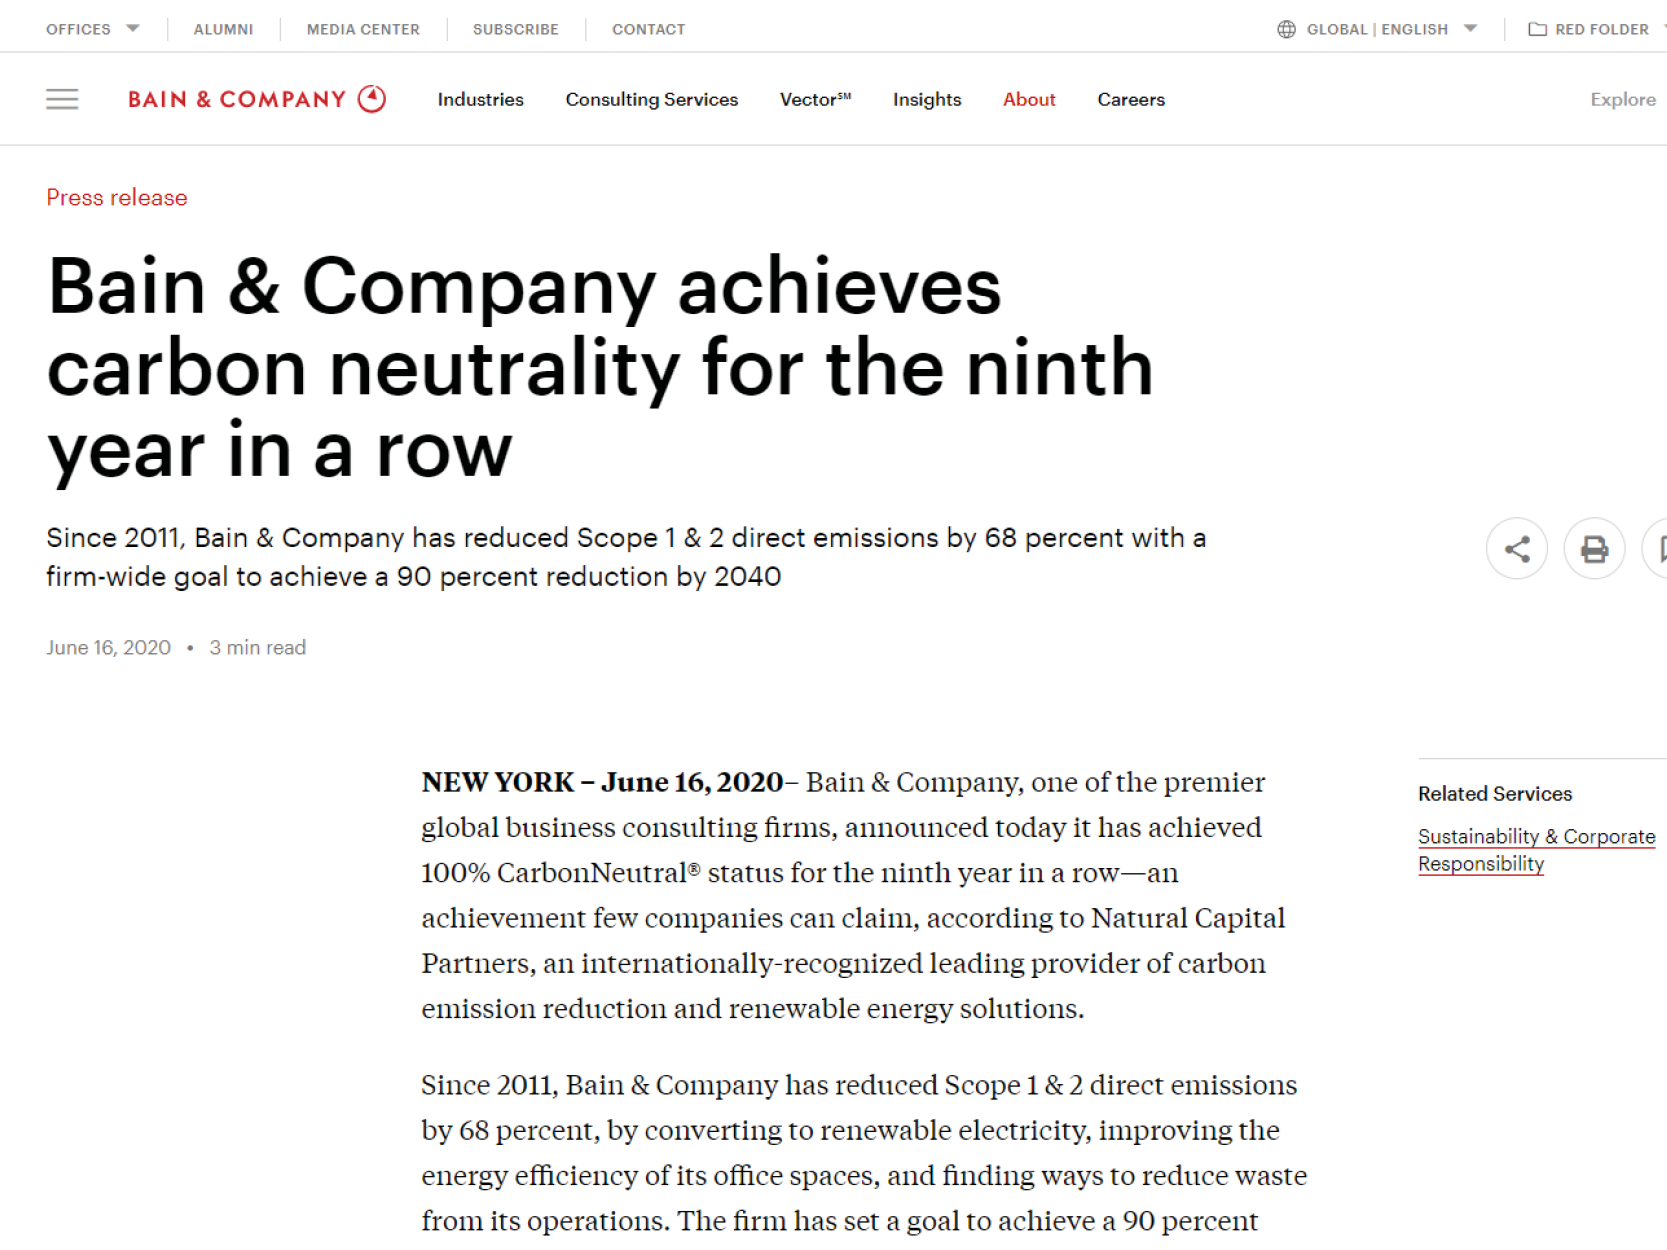 Bain & Company achieves carbon neutrality for the ninth year in a row